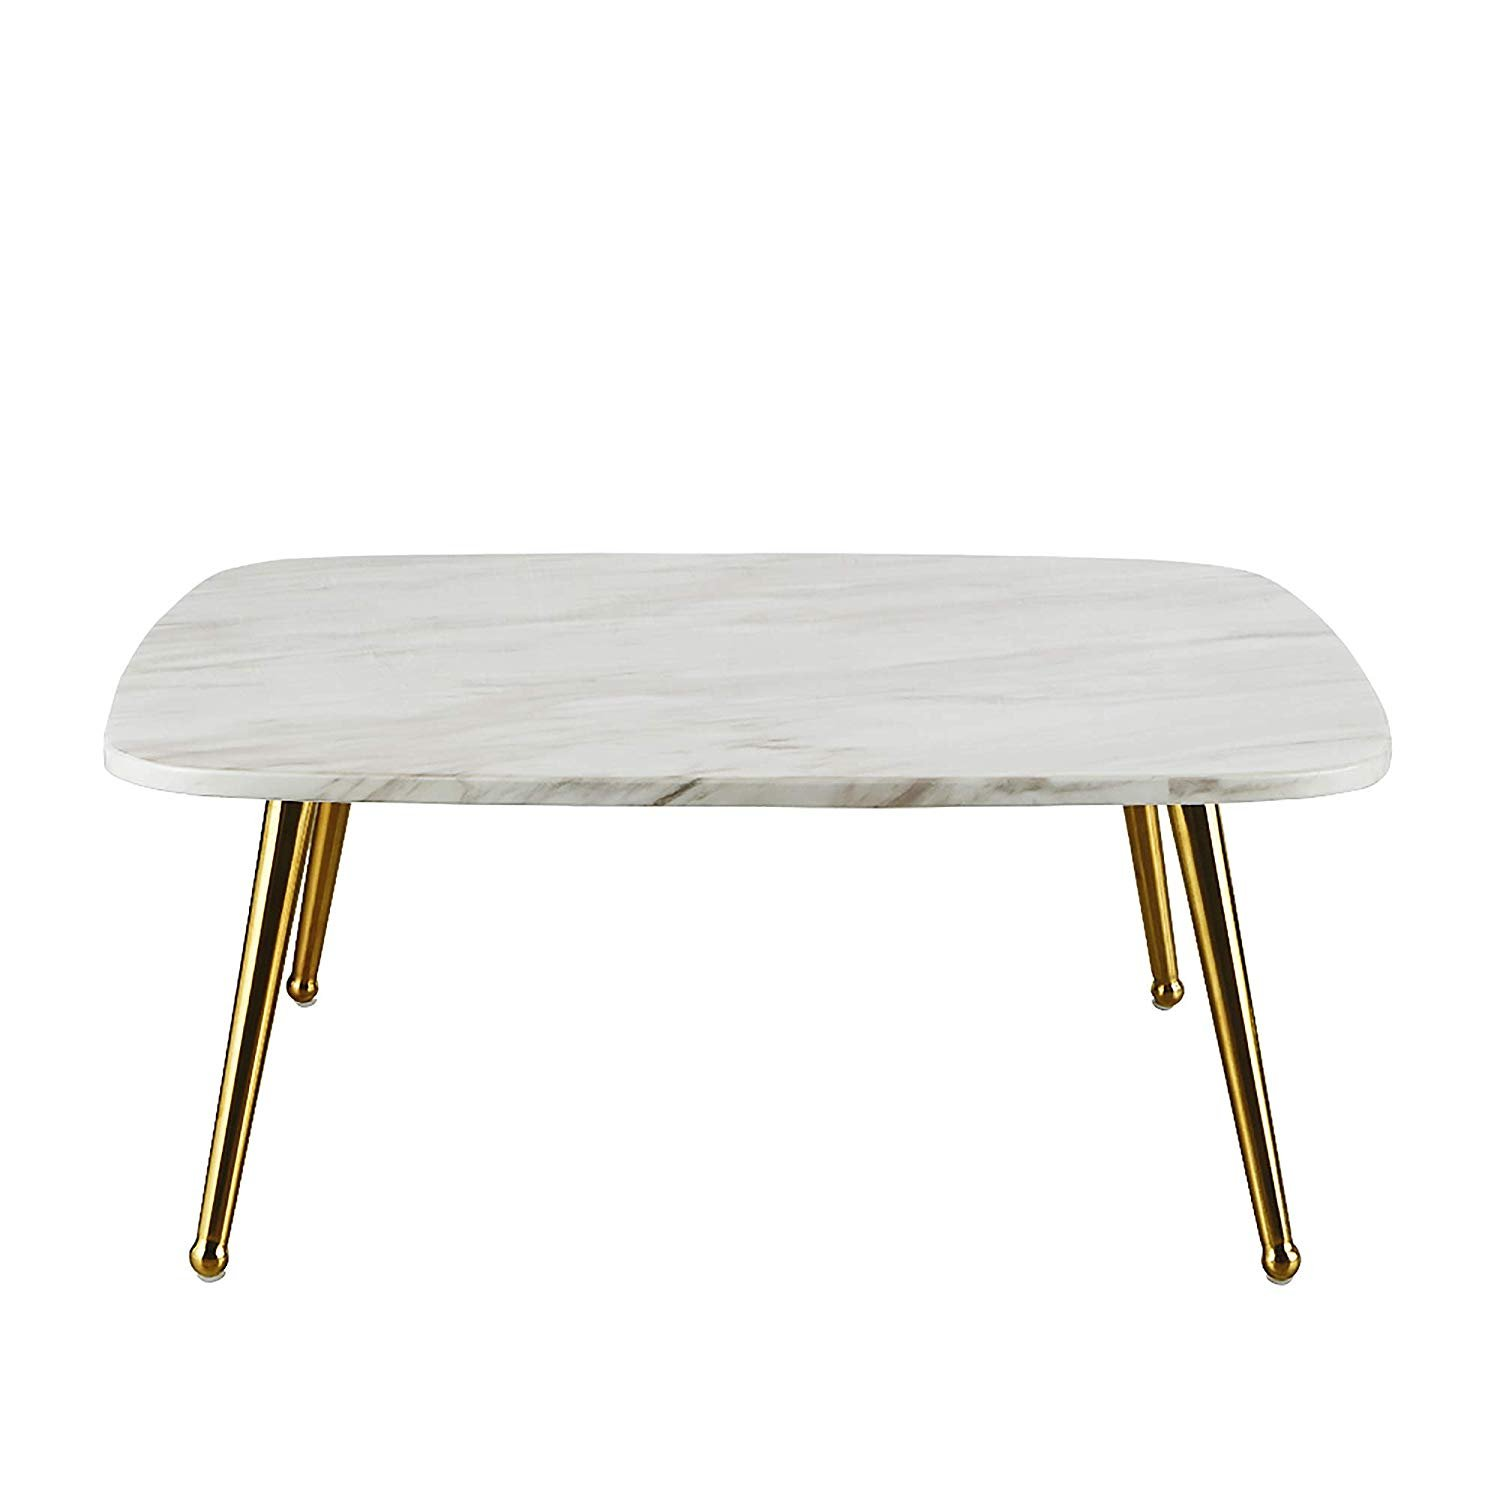 Modern Mid Century Coffee Table With Marble Print And Gold Legs